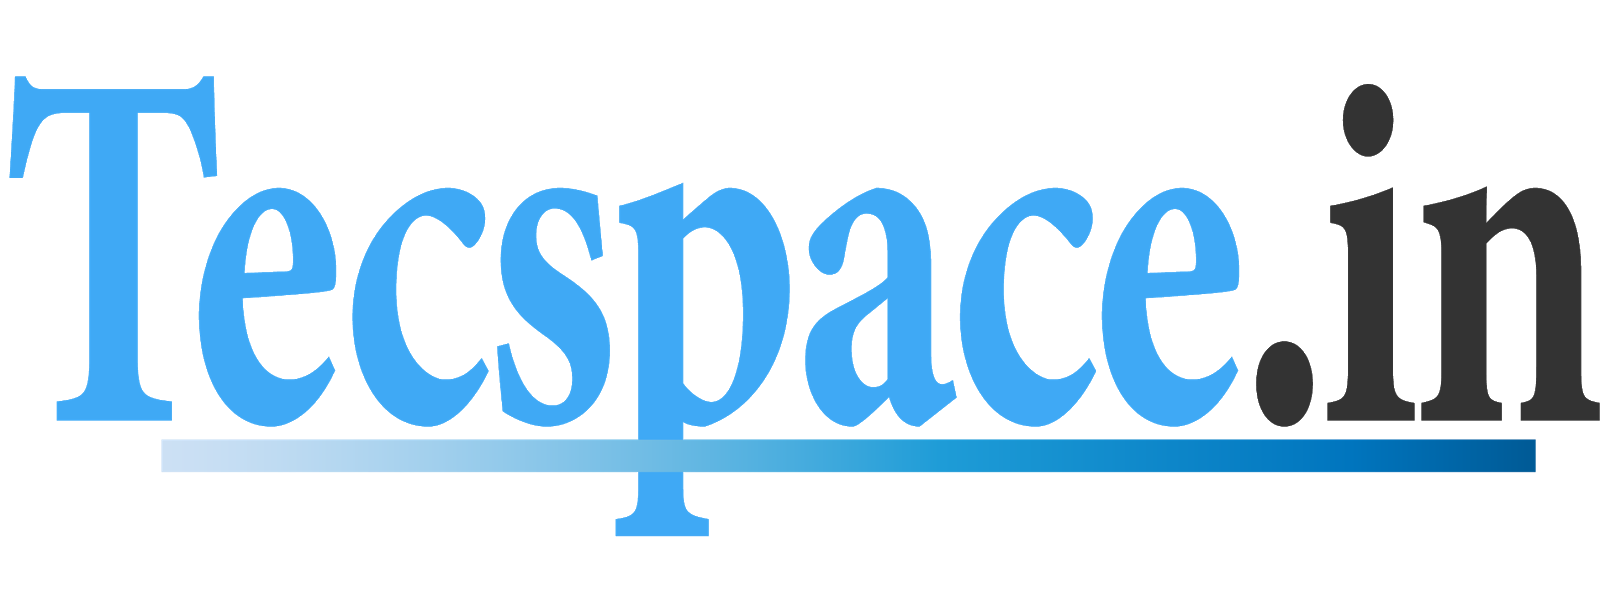 Tecspace.in Latest Tech News Website